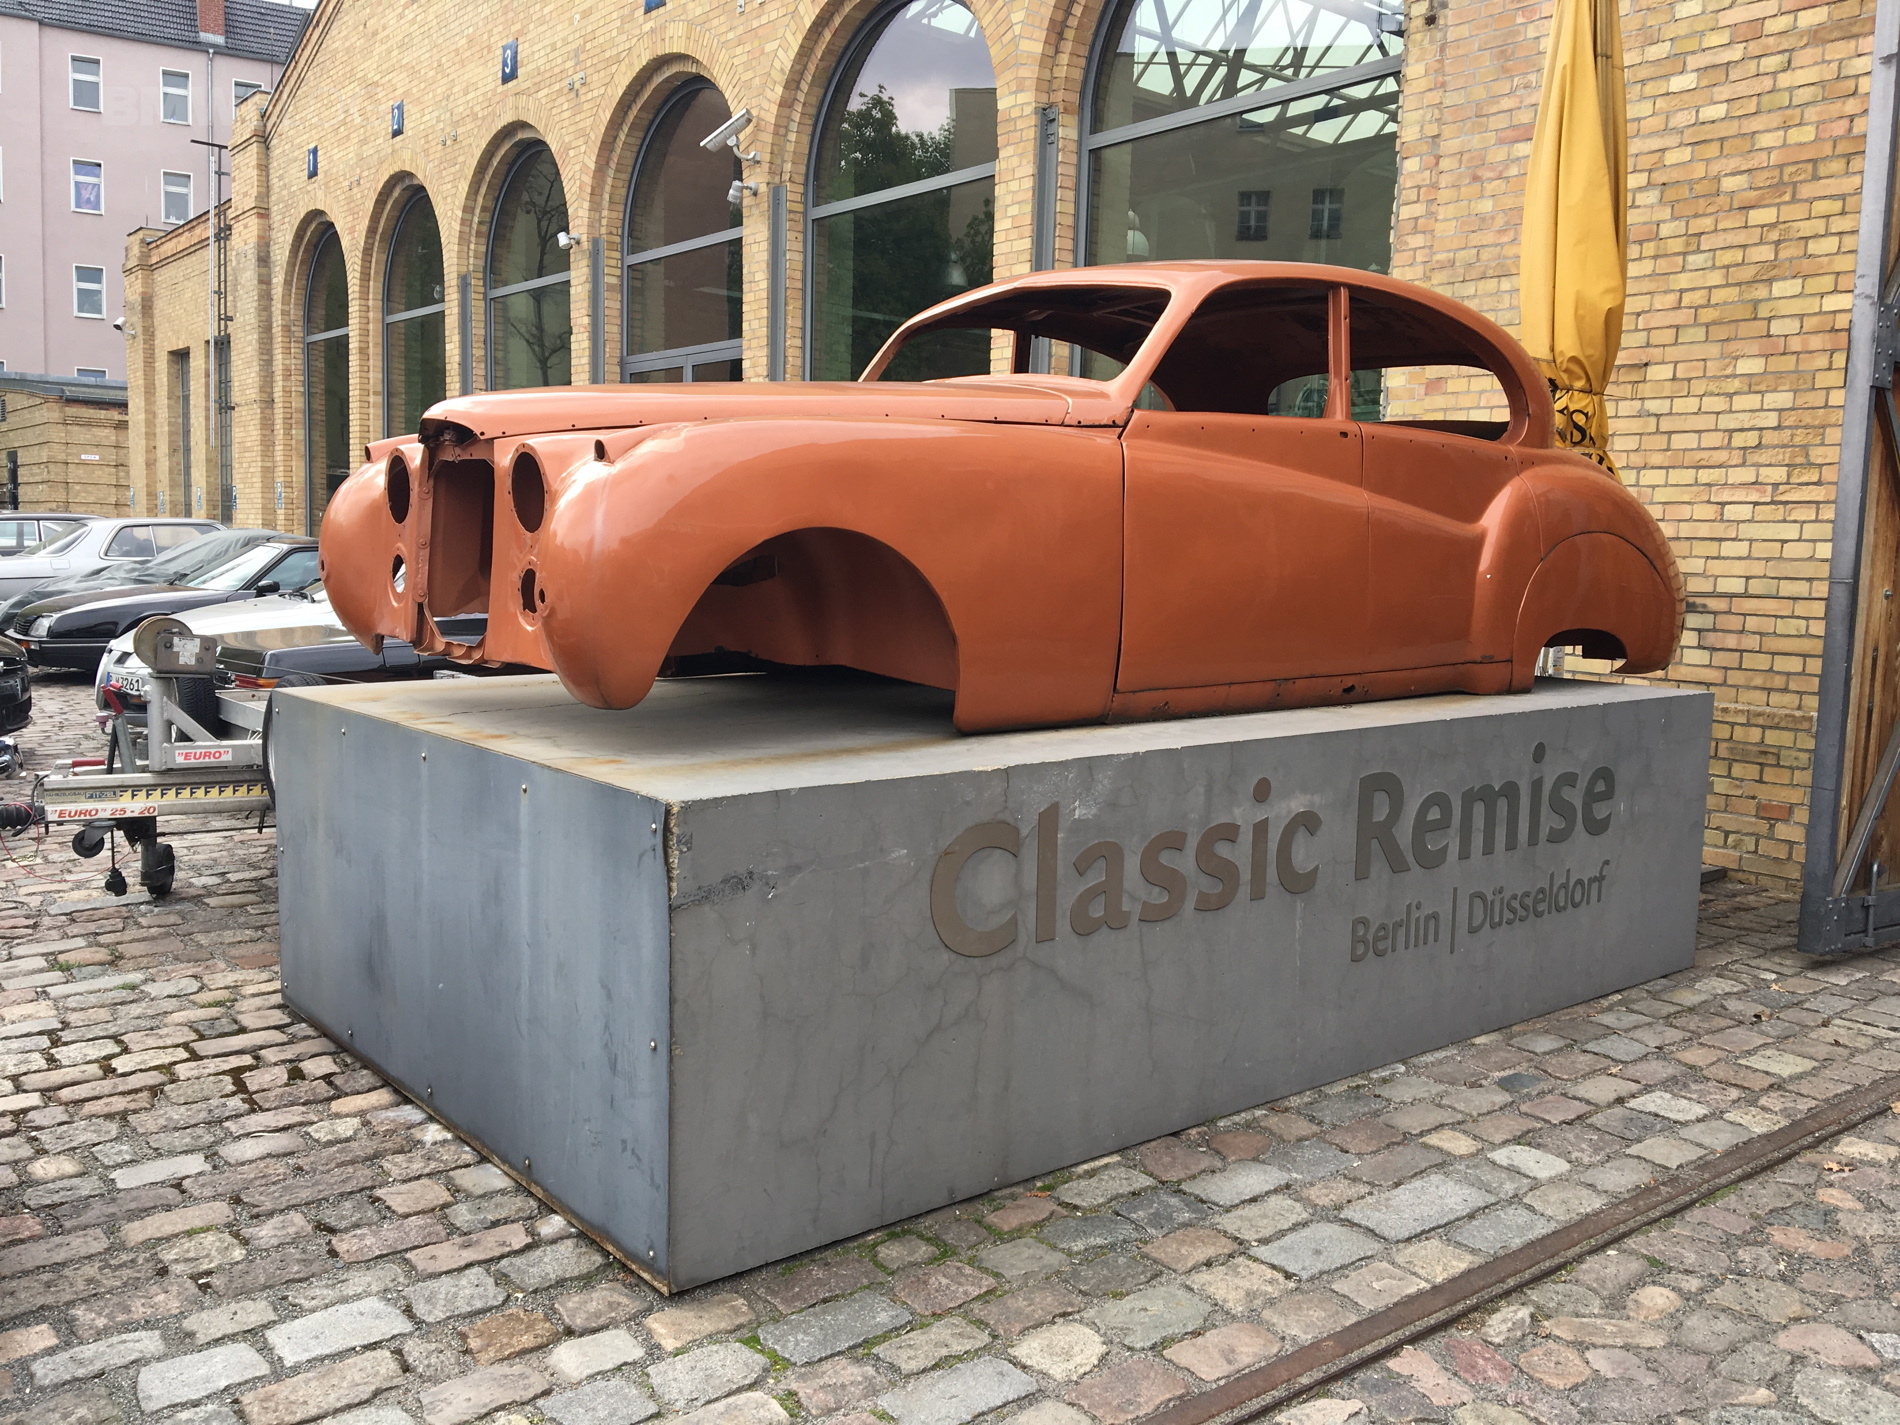 We Visit The Classic Remise In Berlin To See Exquisite Automobiles